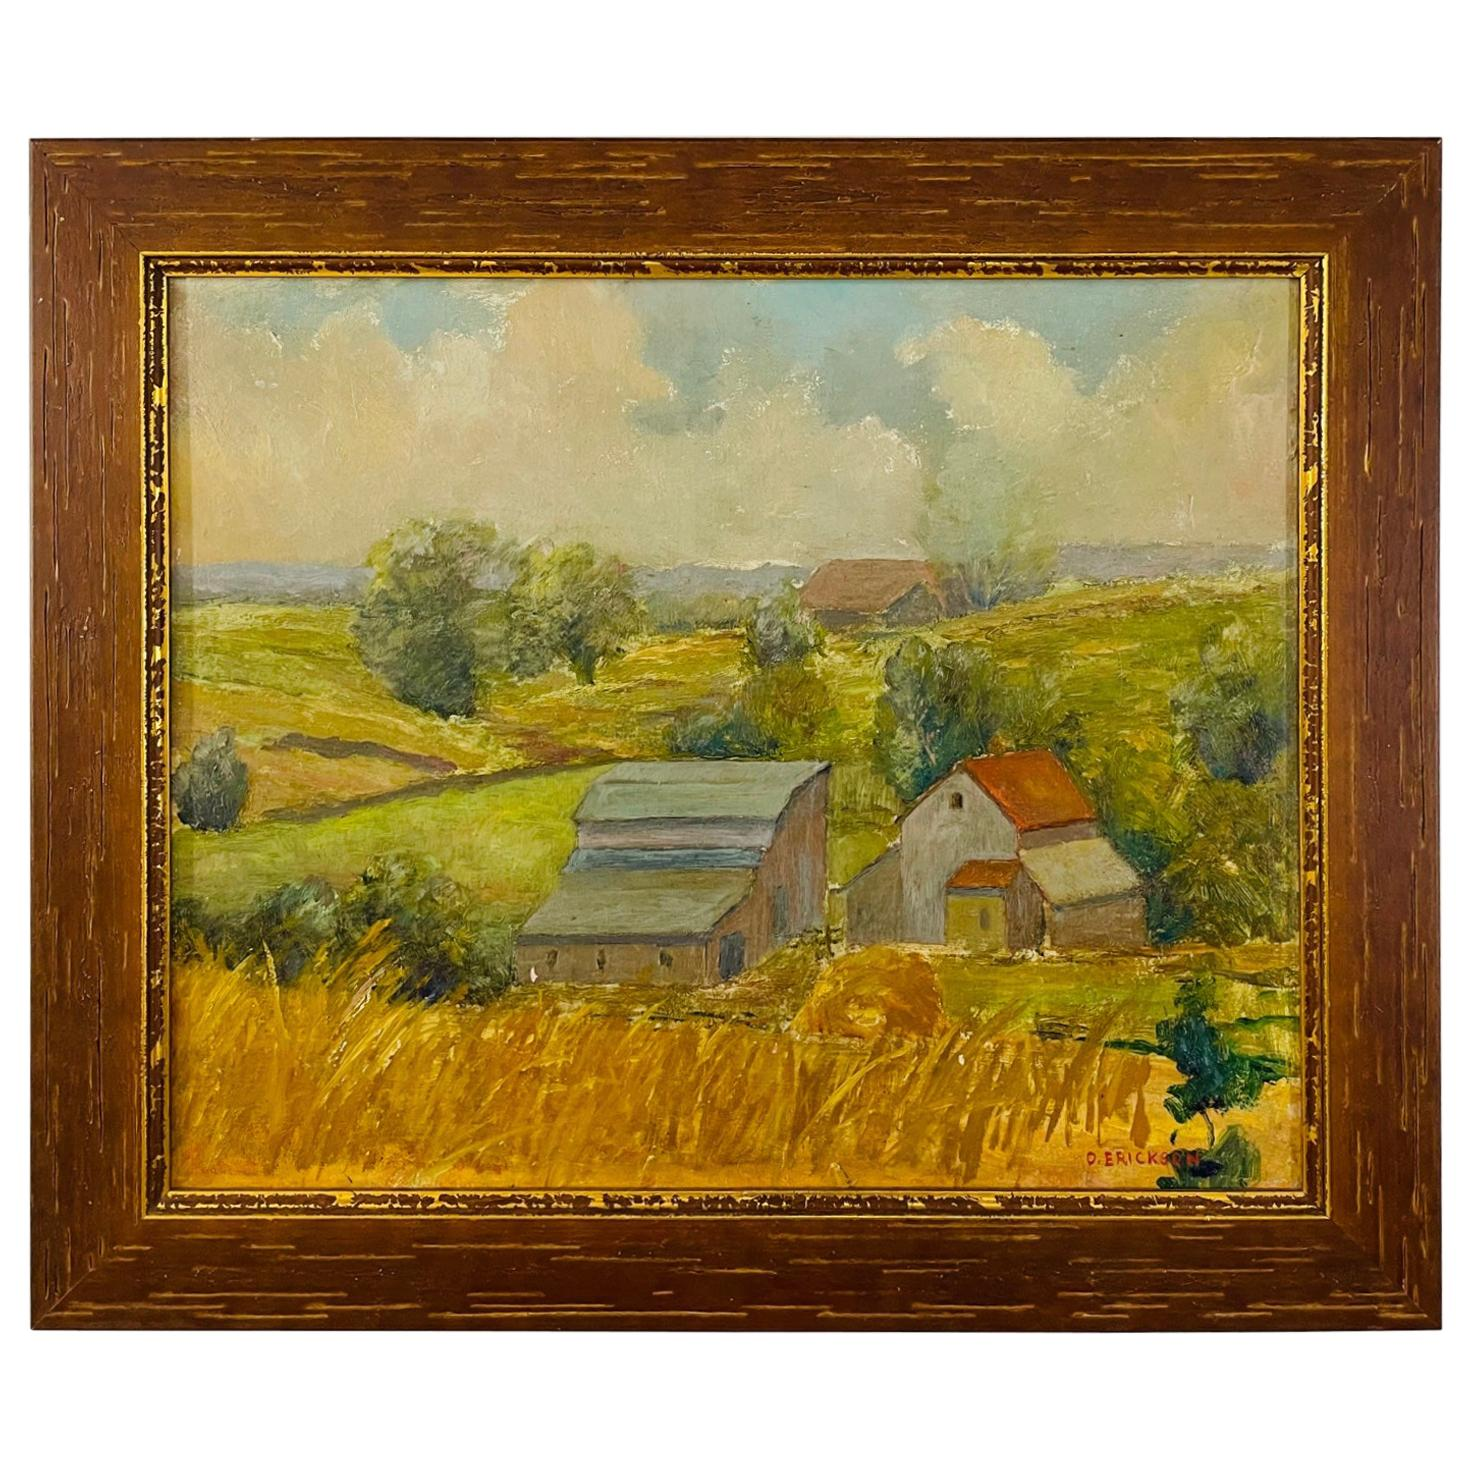 Landscape Oil on Board Painting Signed O.Erickson